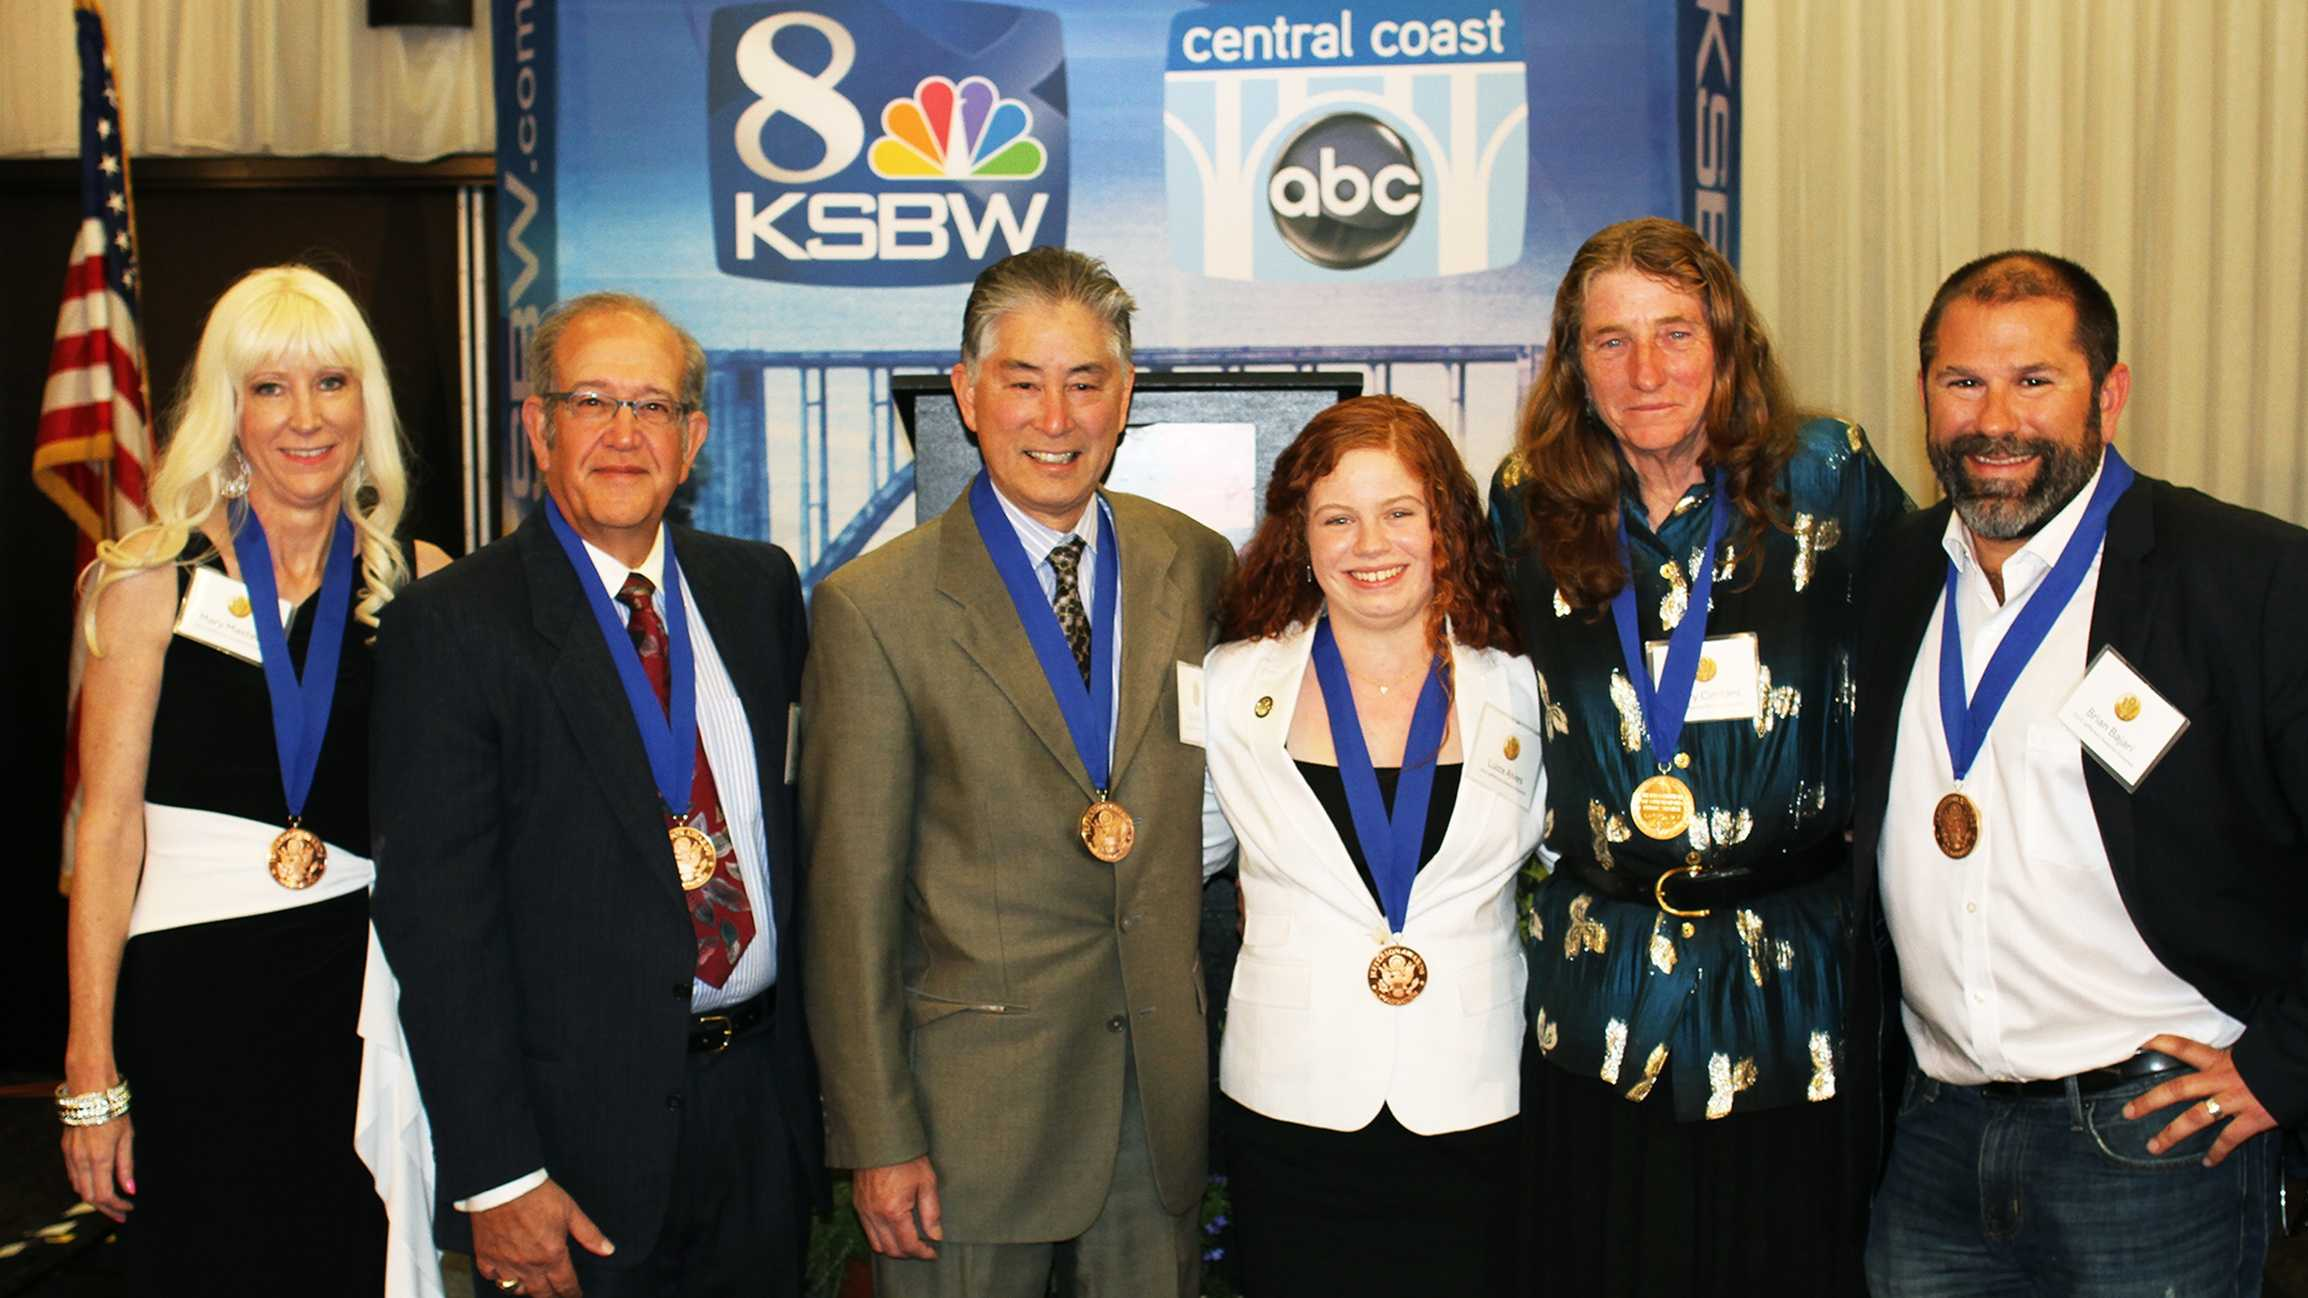 2015 KSBW Jefferson Award honorees